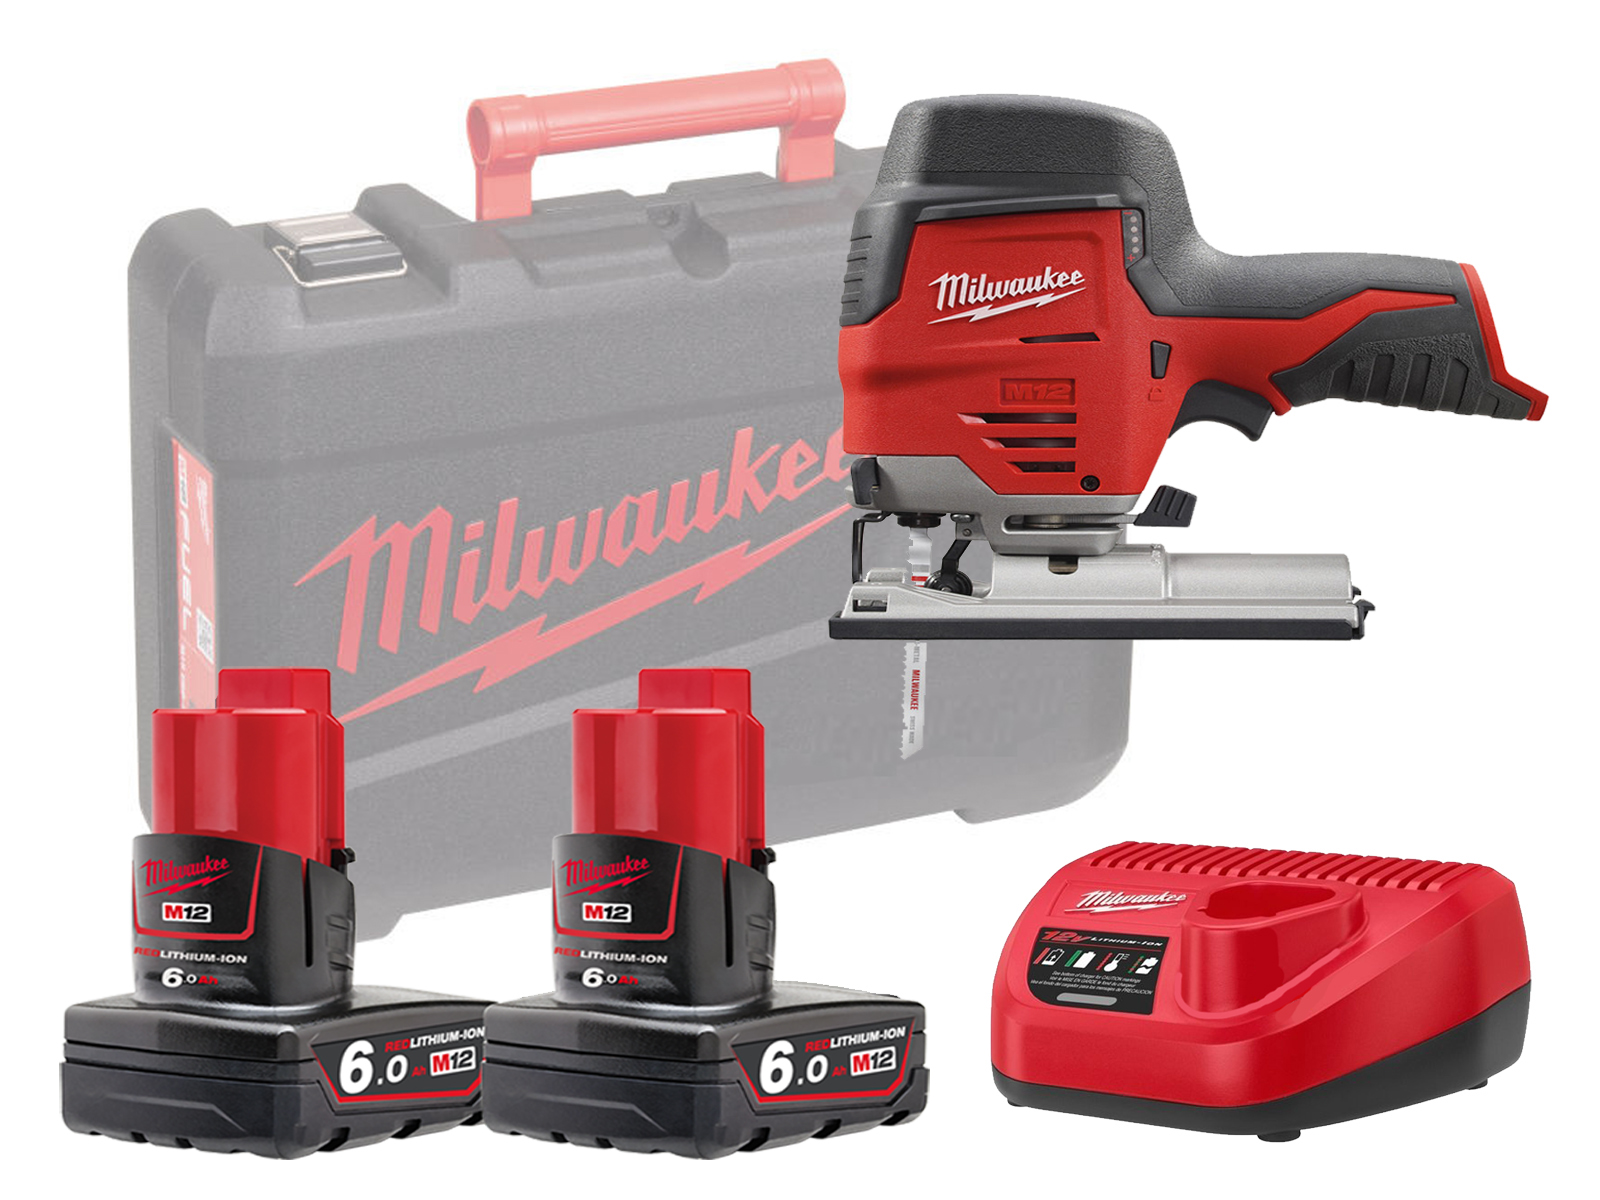 Milwaukee M12JS 12V Sub Compact Brushed Jigsaw with QUICK-LOK T-Shank Blade Clamp - 6.0ah Pack